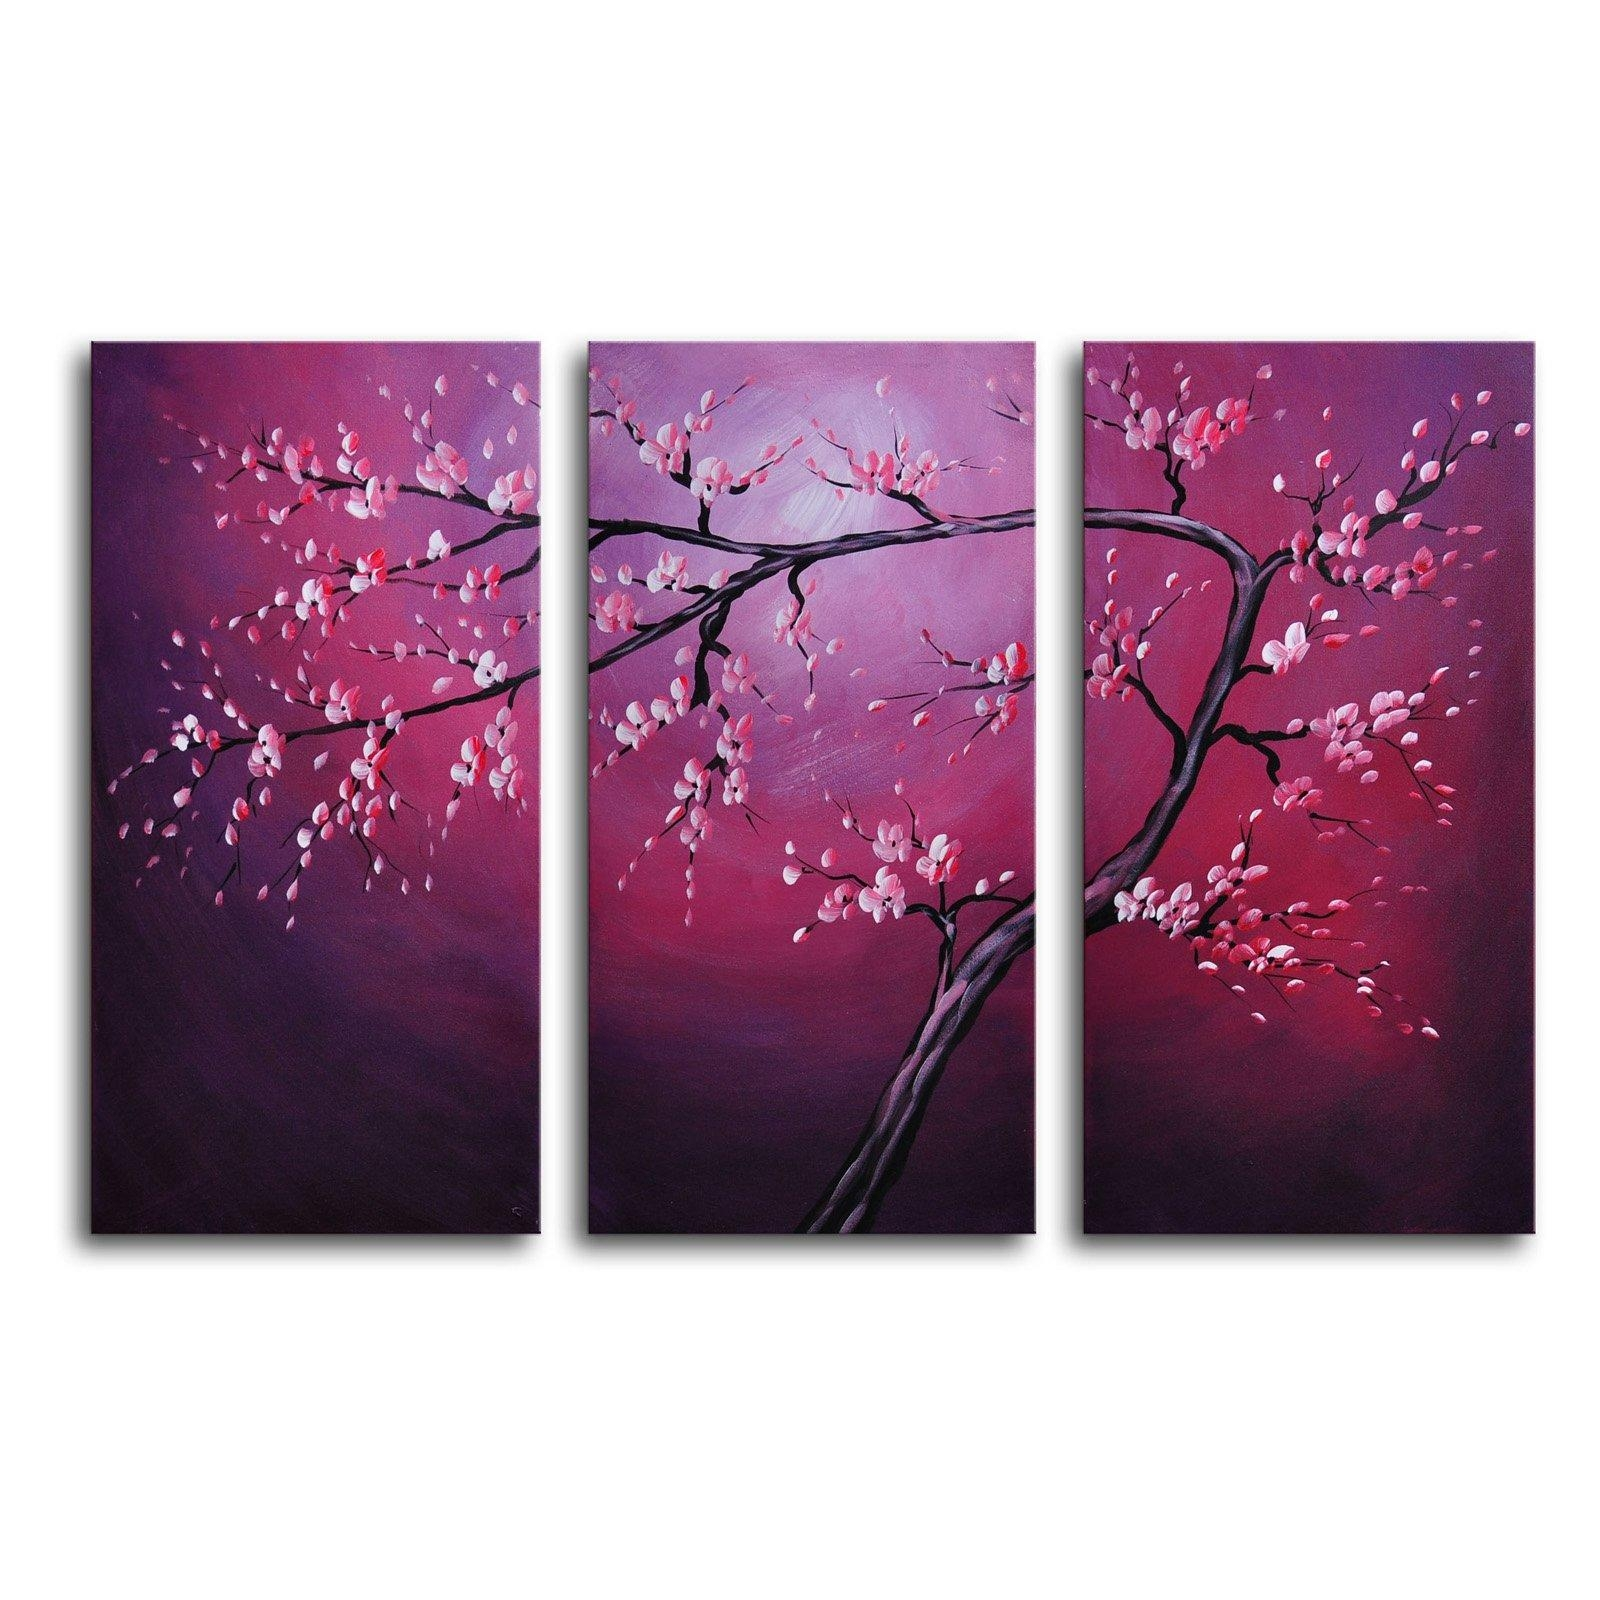 Pink On Crimson 3 Piece Canvas Wall Art – 36W X 24H In (Image 16 of 20)